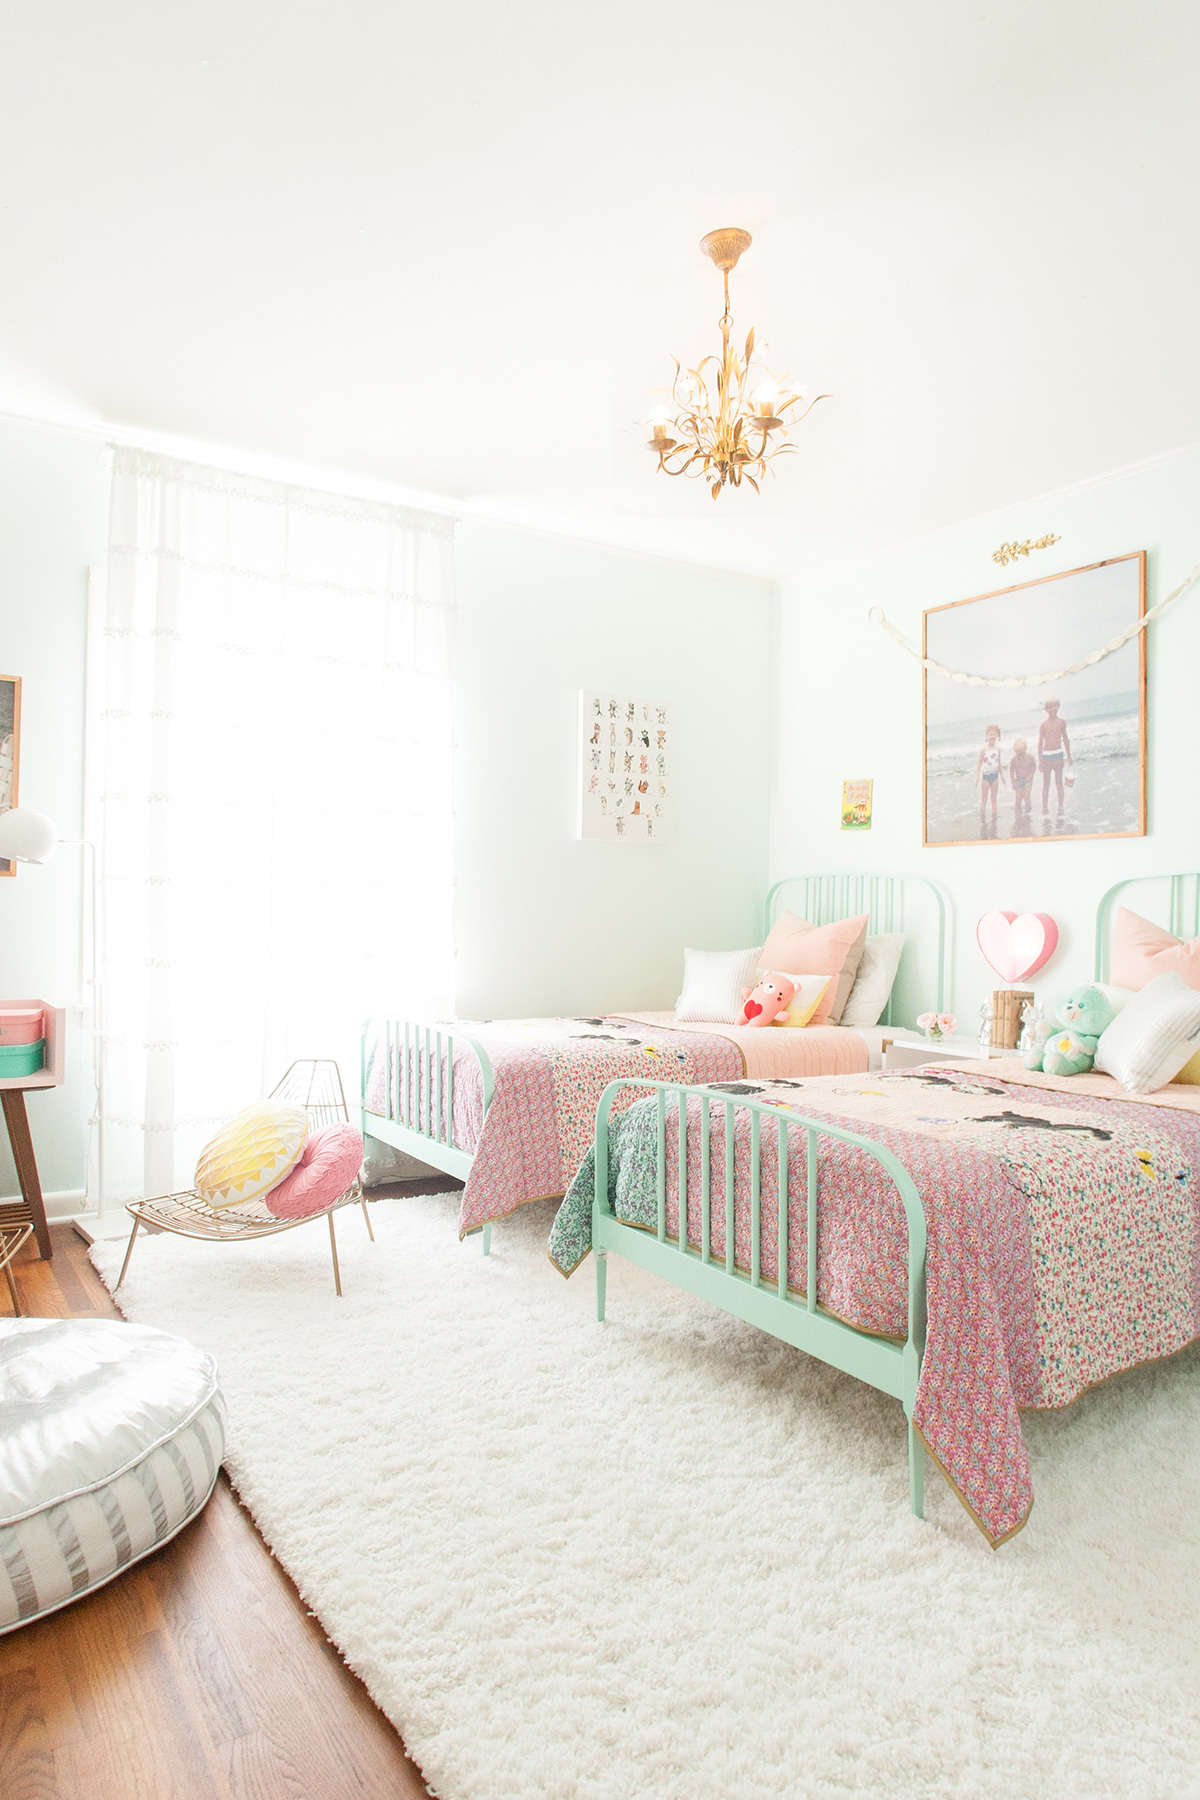 These twin panel beds for girls look classy and cool painted mint green - and imagine how easy they will be to repaint if color tastes change!